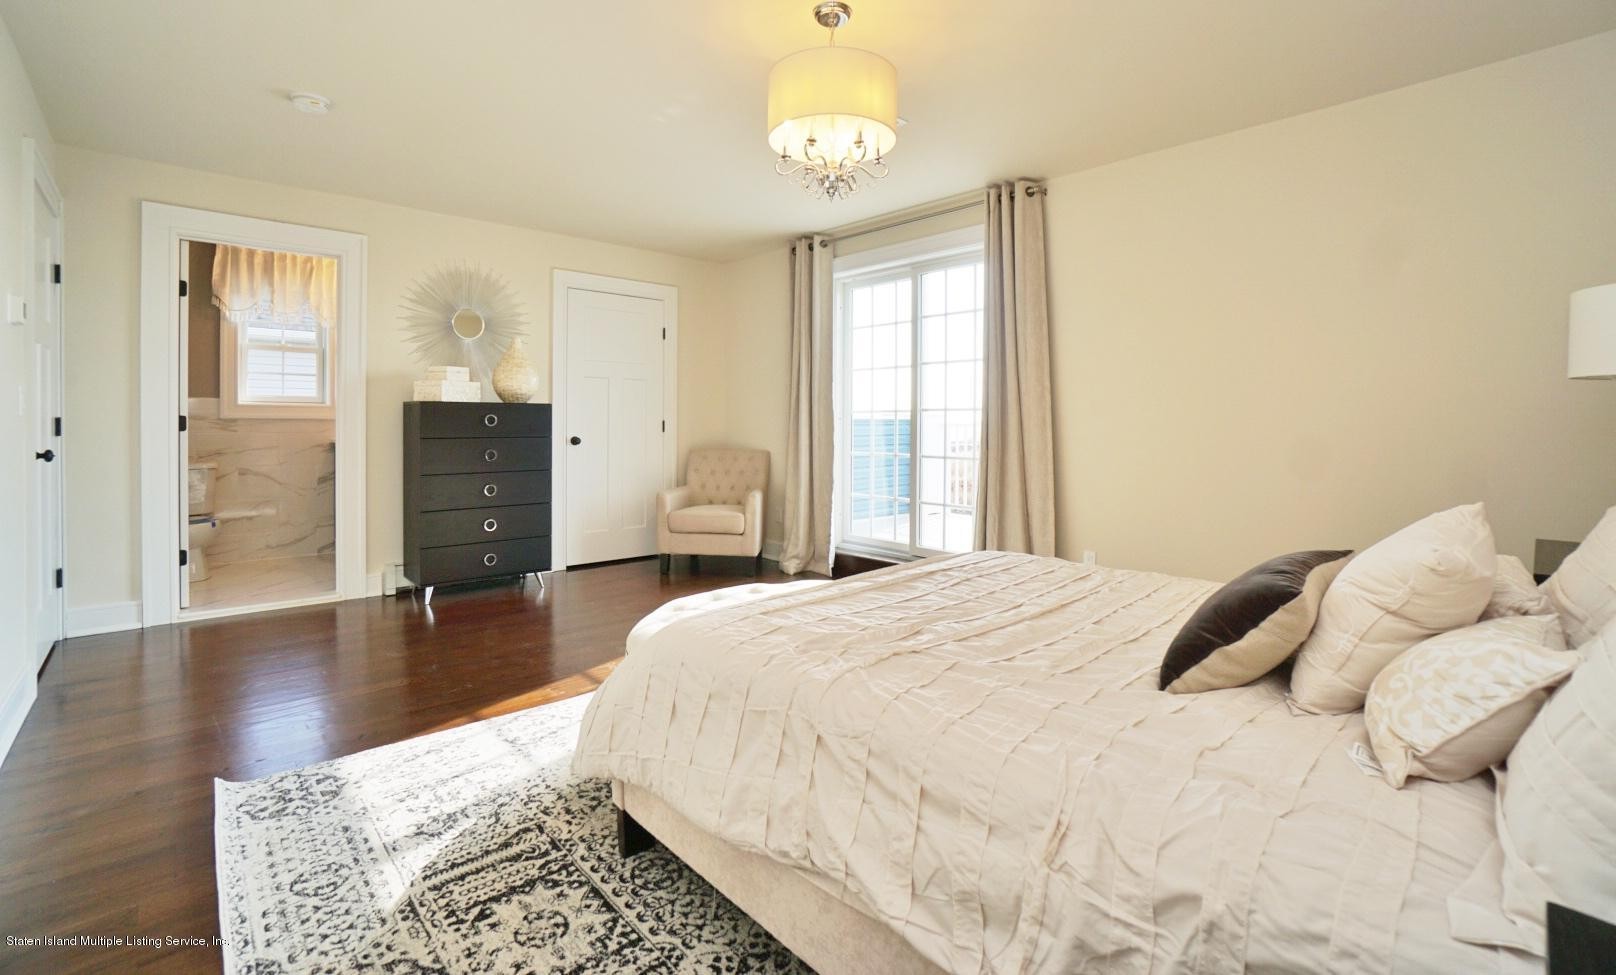 Single Family - Detached 26 Purdy Place  Staten Island, NY 10309, MLS-1129505-28